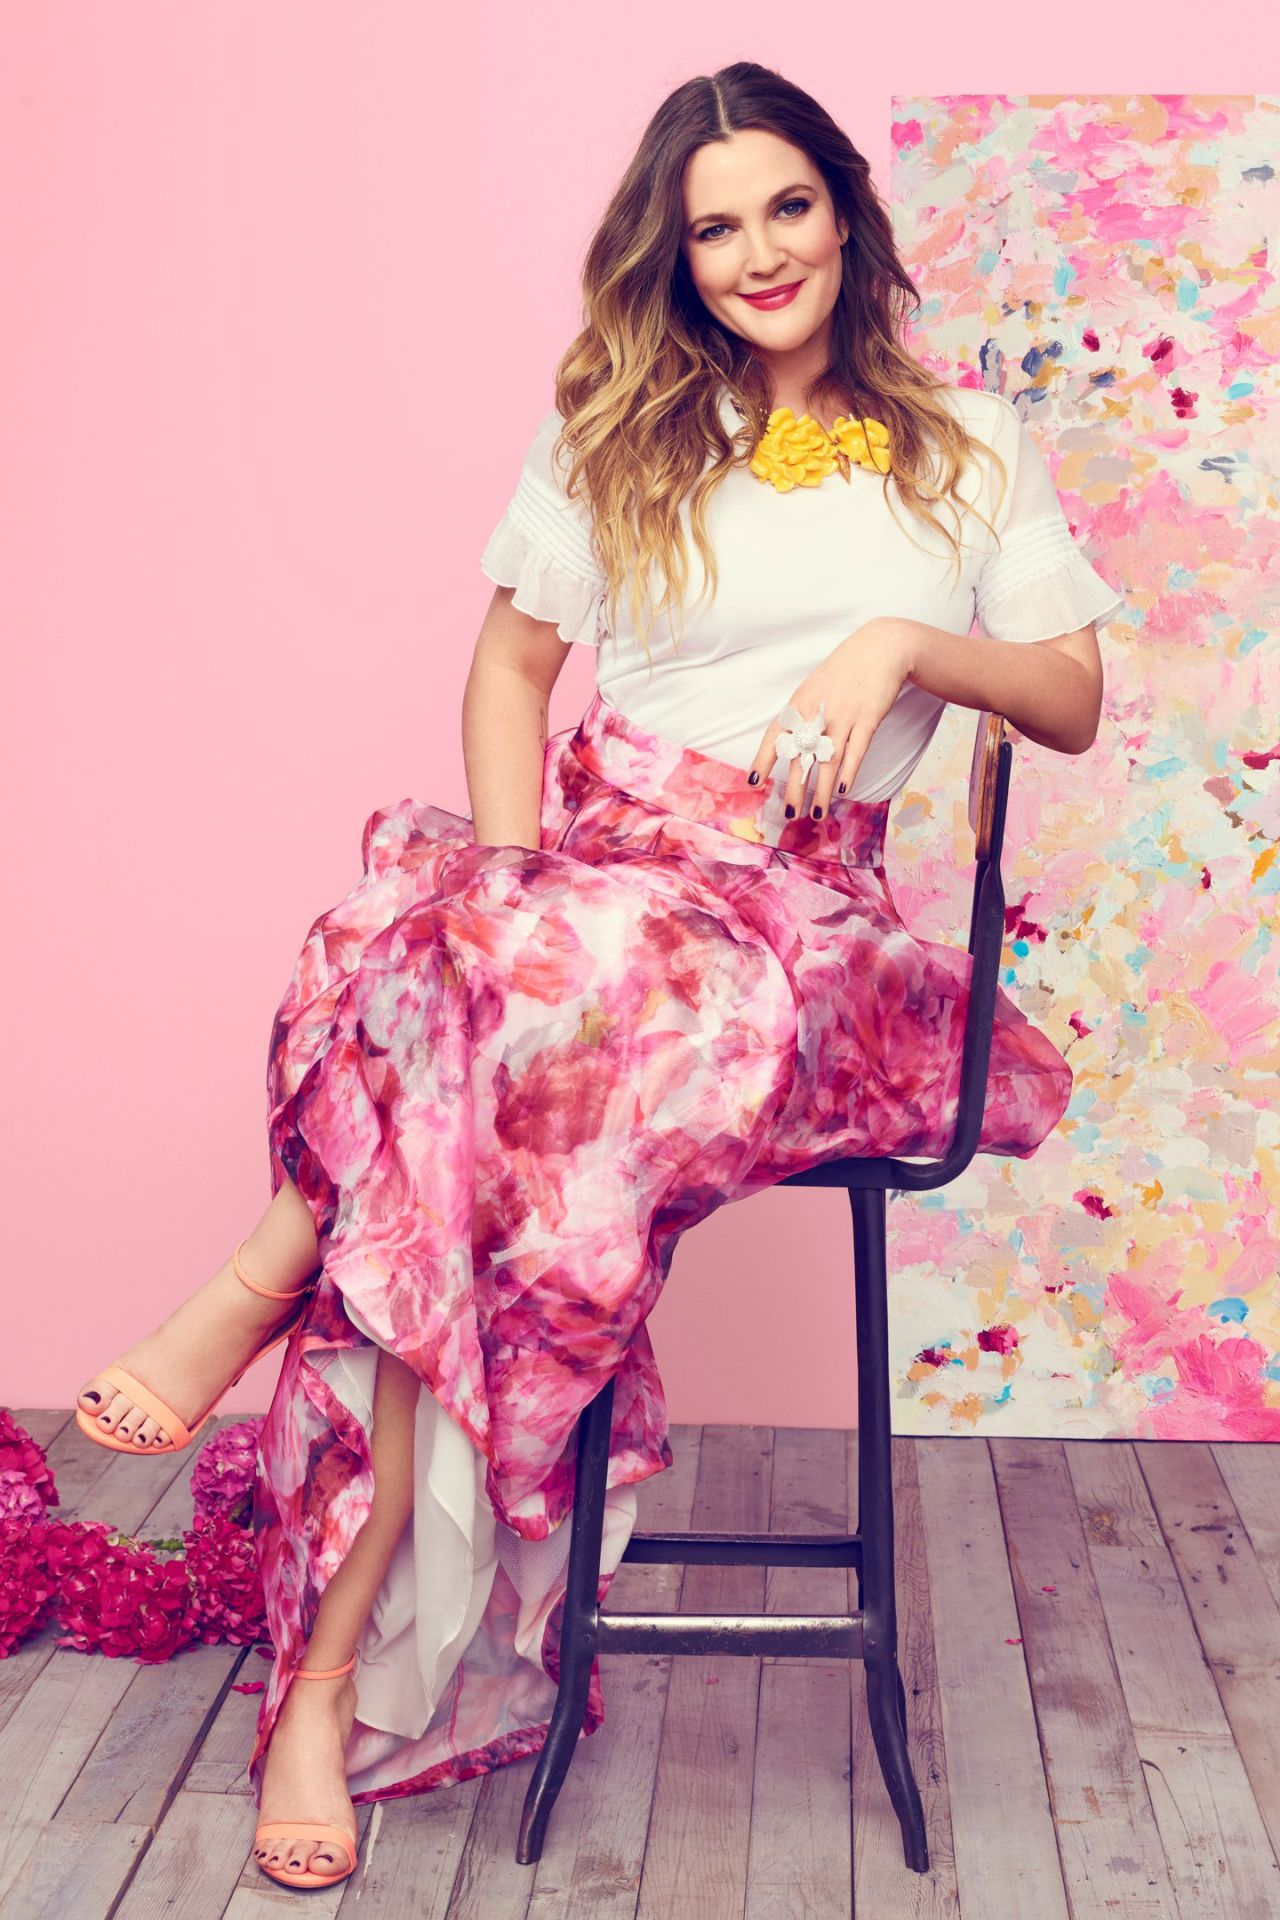 Drew Barrymore – Photoshoot for Good Housekeeping May 2016 Drew Barrymore